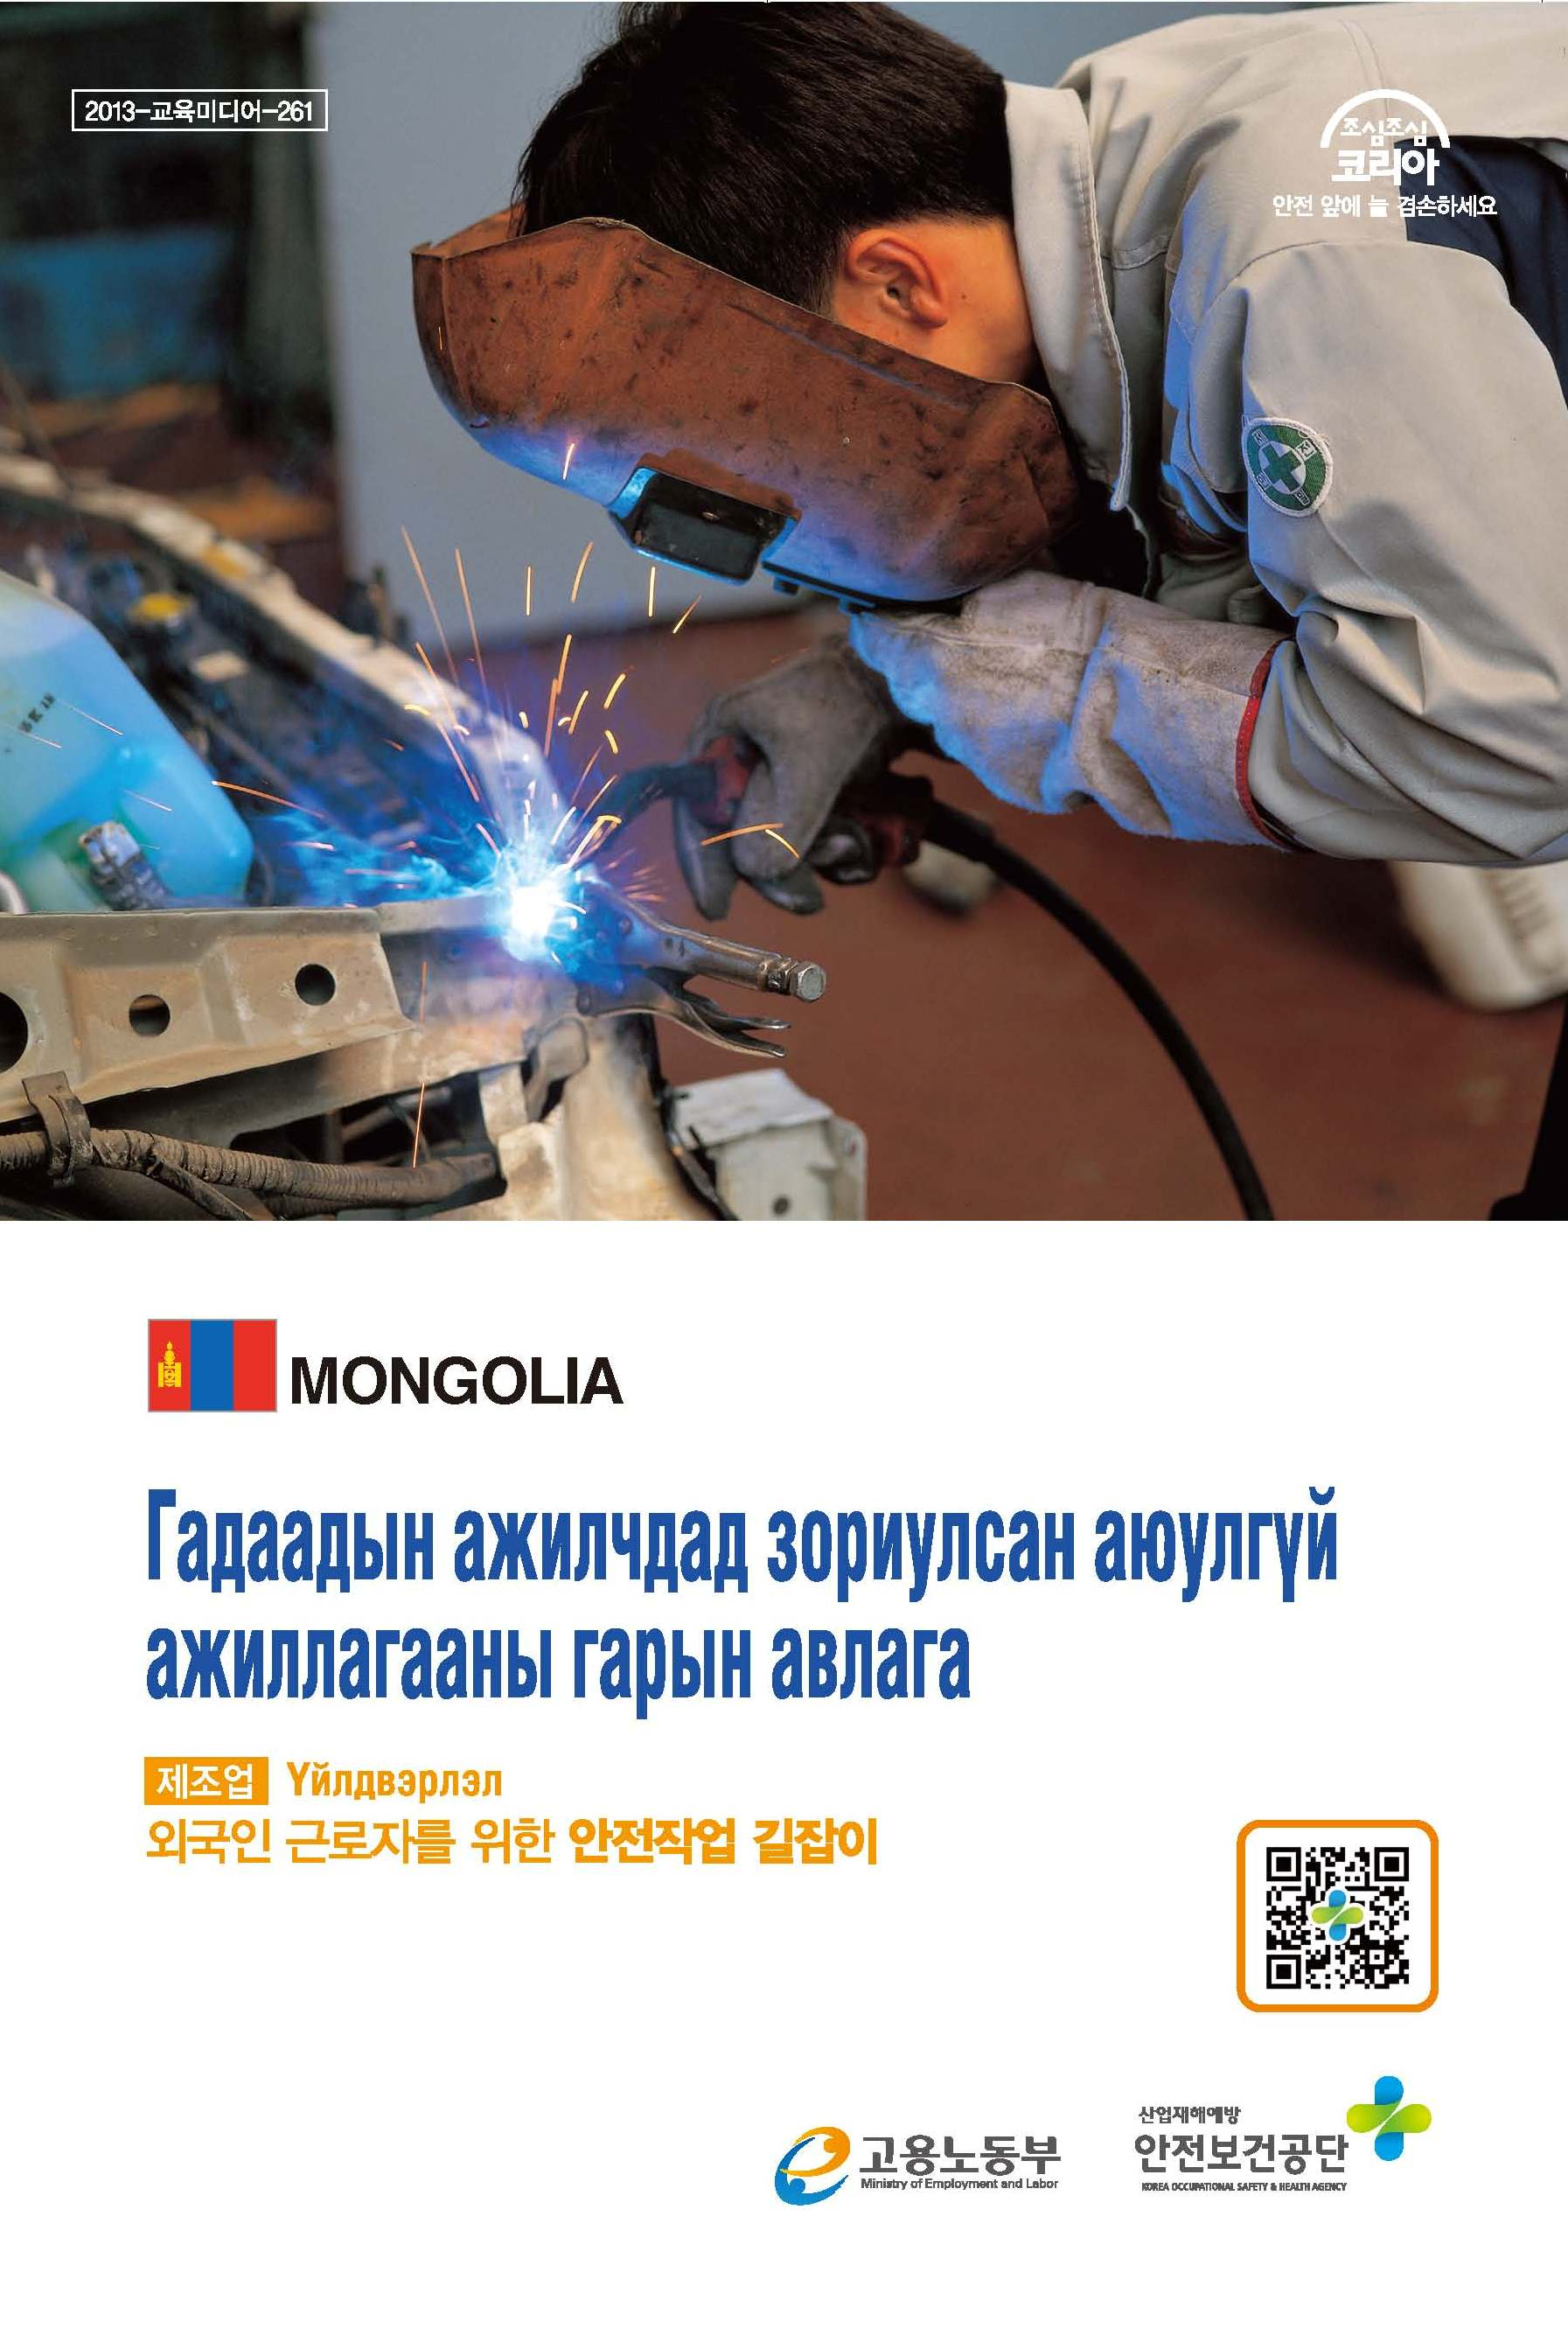 (Manufacturing Industry) Safety Guide for Foreign Workers (Mongolian) (제조업)외국인근로자를 위한 안전작업길잡이(몽골)